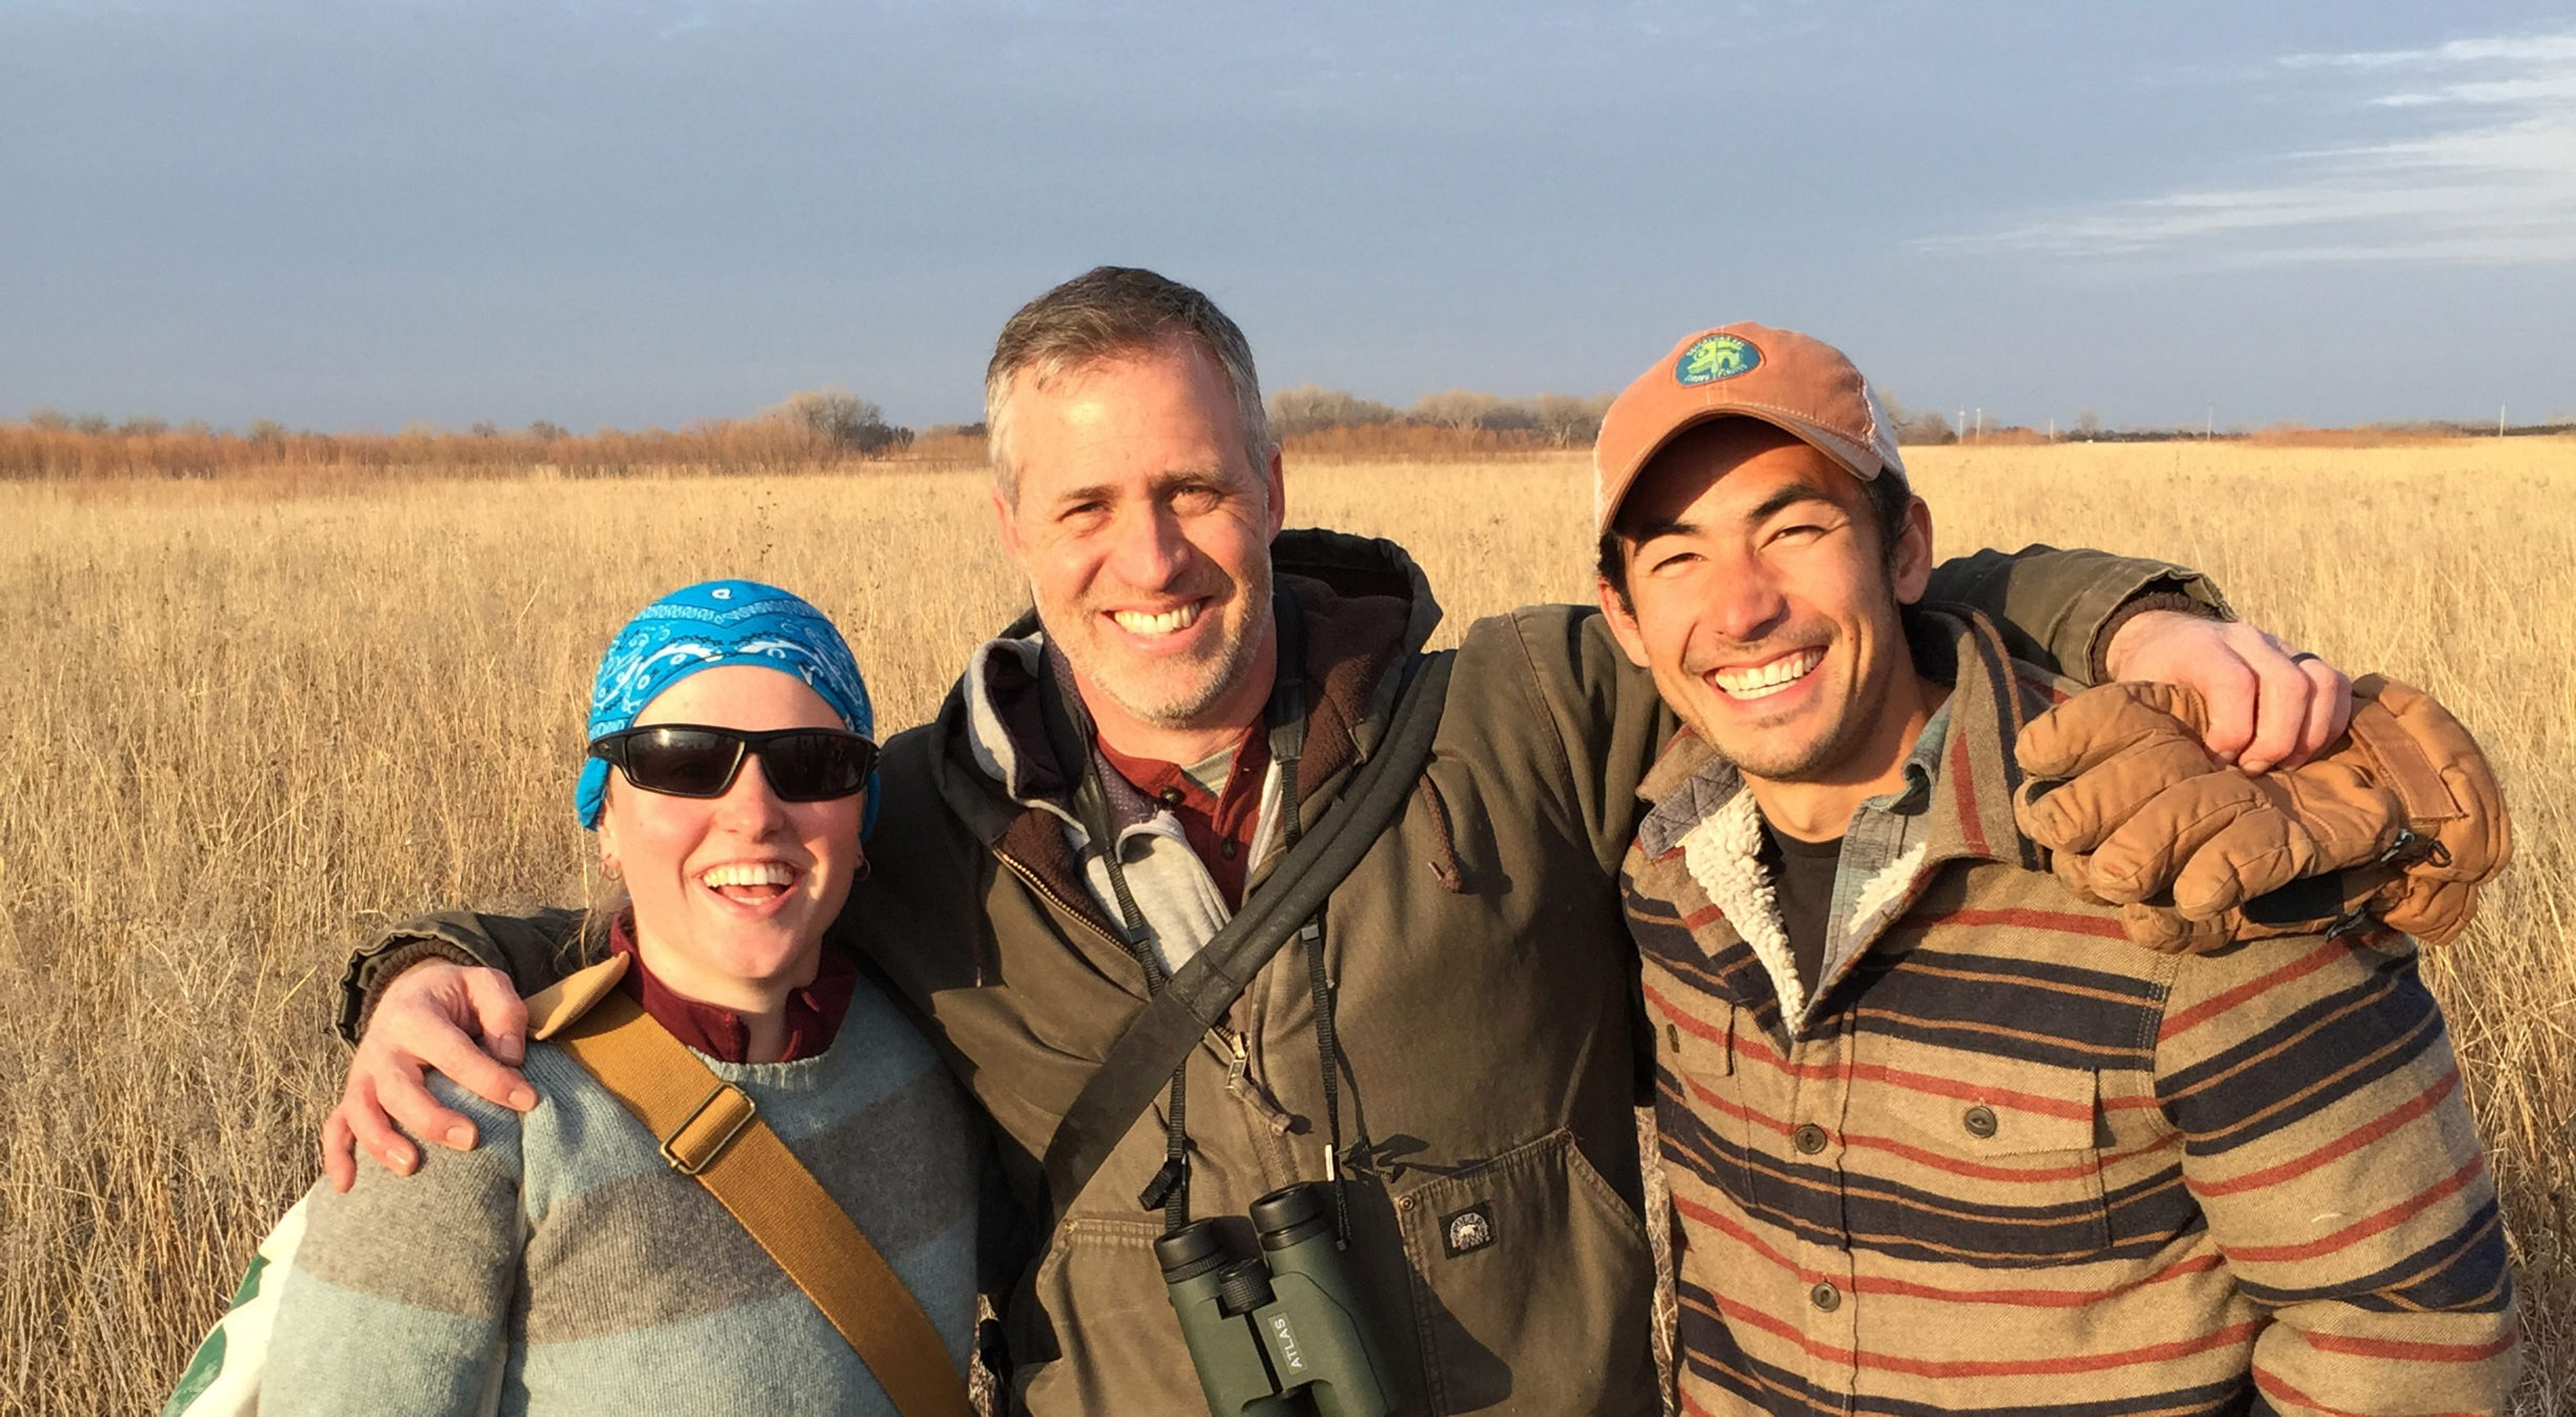 (From left to right) Fellow Katherine Hogan, Director of Science Chris Helzer, and Fellow Eric Chien.